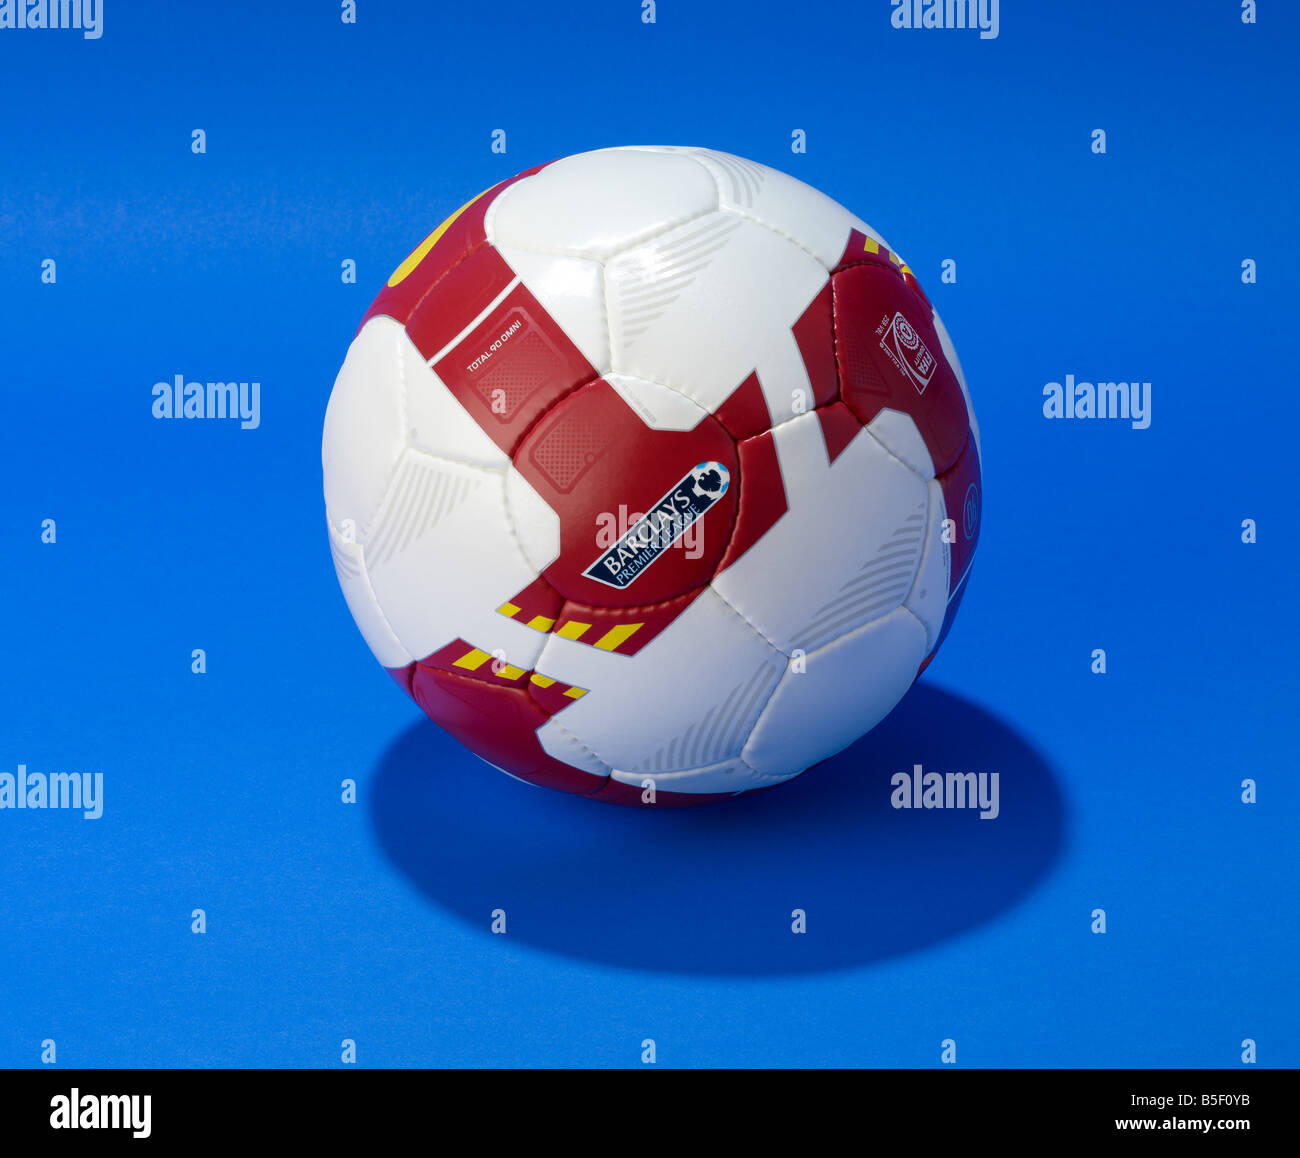 Barclays premier league football - Stock Image